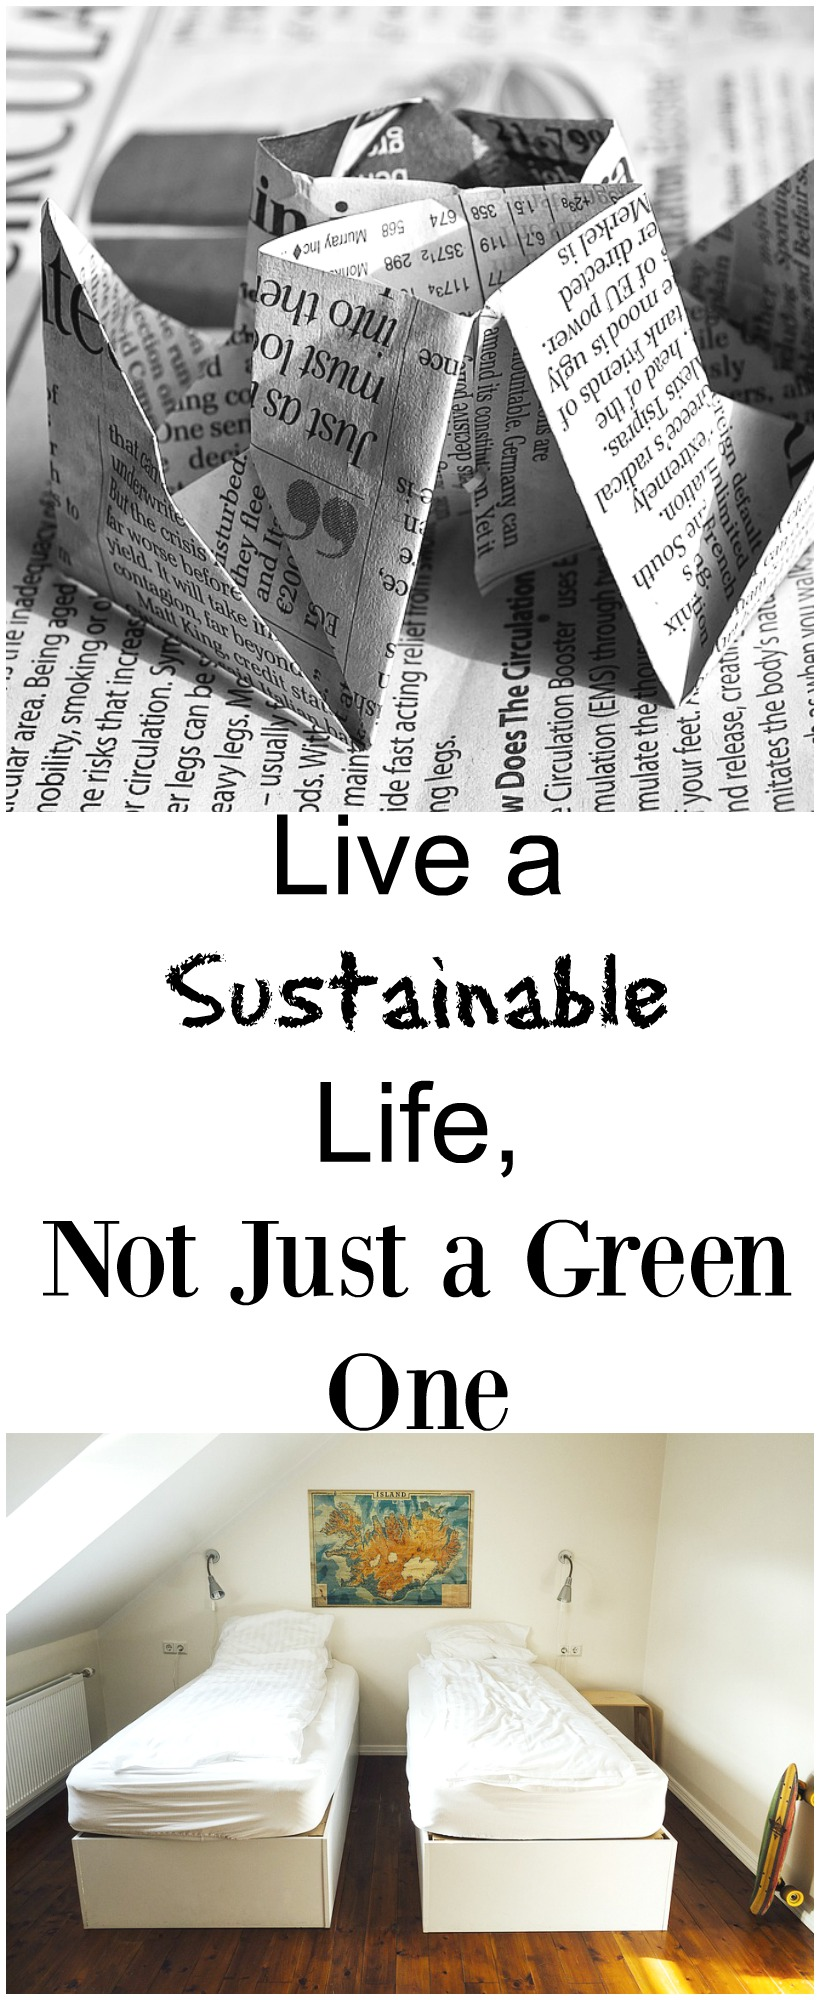 Live a Sustainable Life, Not Just a Green One